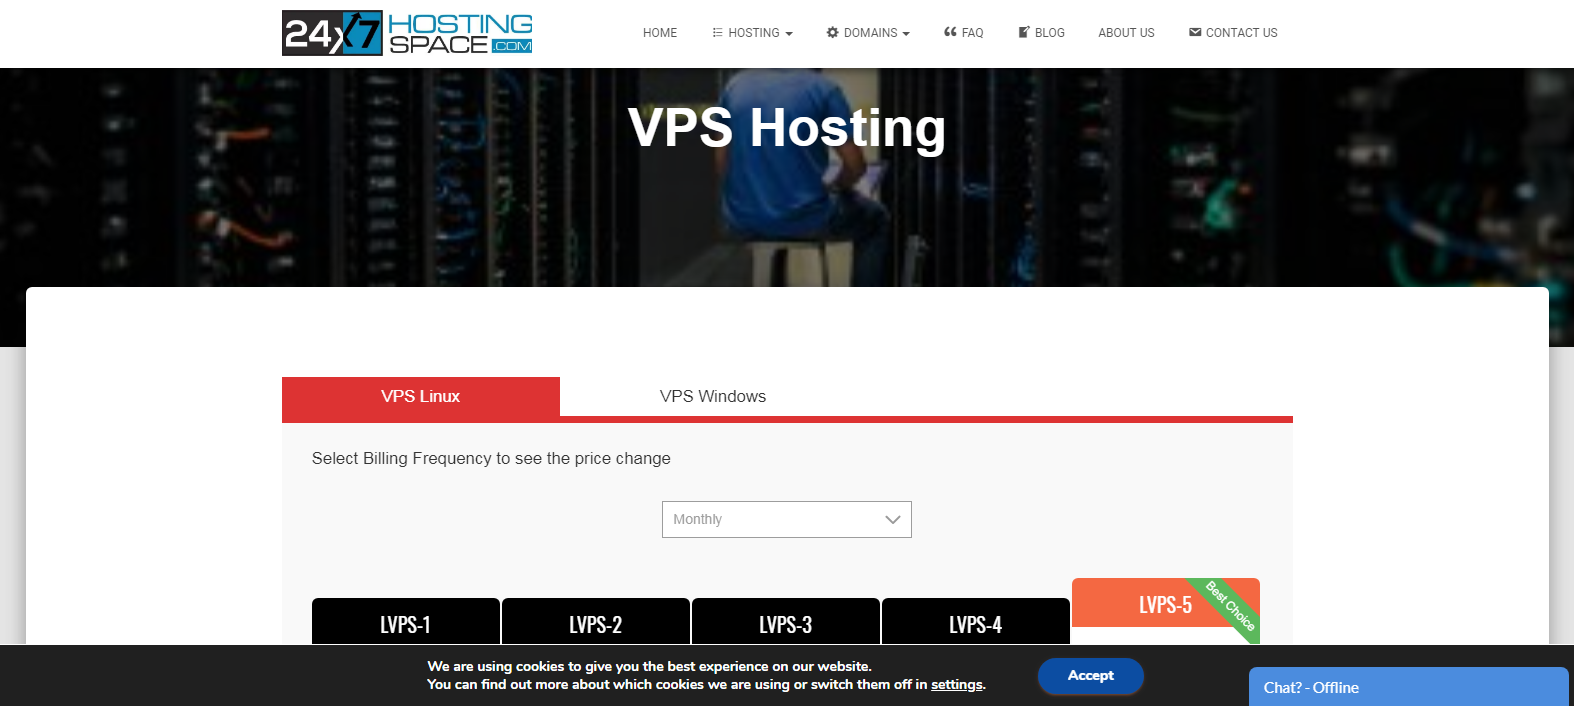 24x7hostingspace website